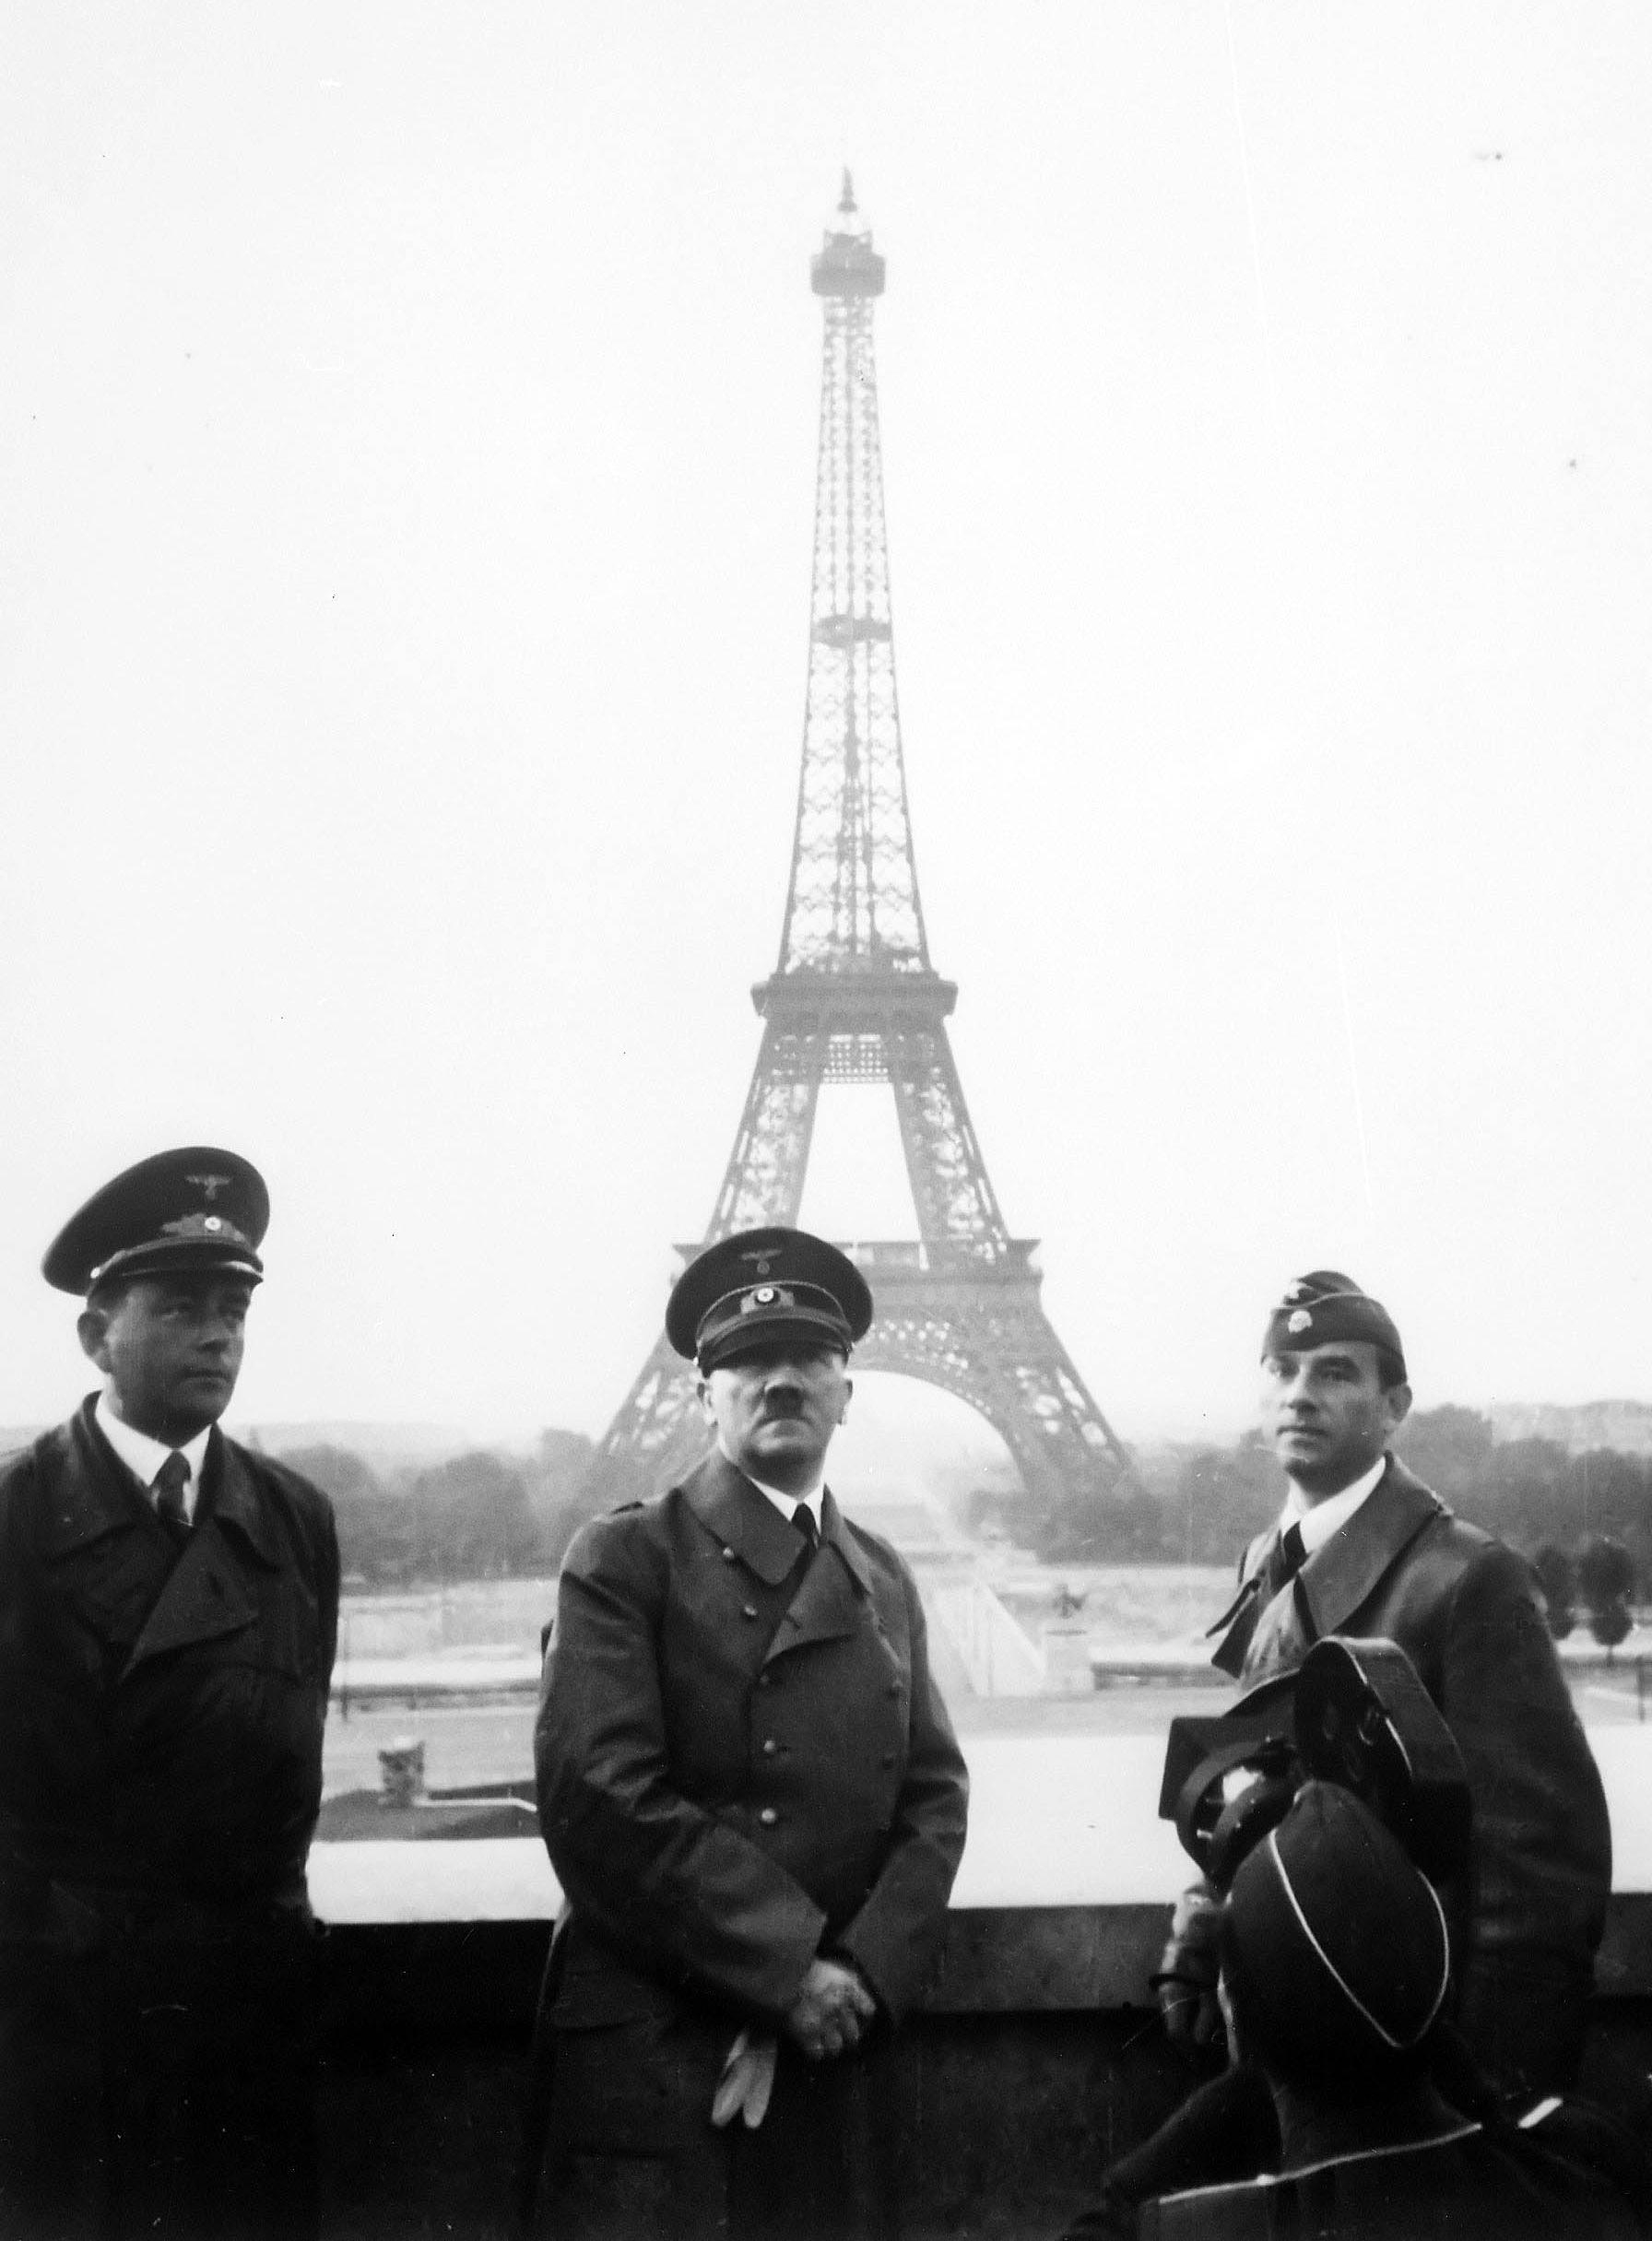 Adolf Hitler touring Paris, France, on June 23, 1940. The Eiffel Tower is visible in the background.  The day before (June 22), France signed an armistice with Germany following the Germans' successful invasion.